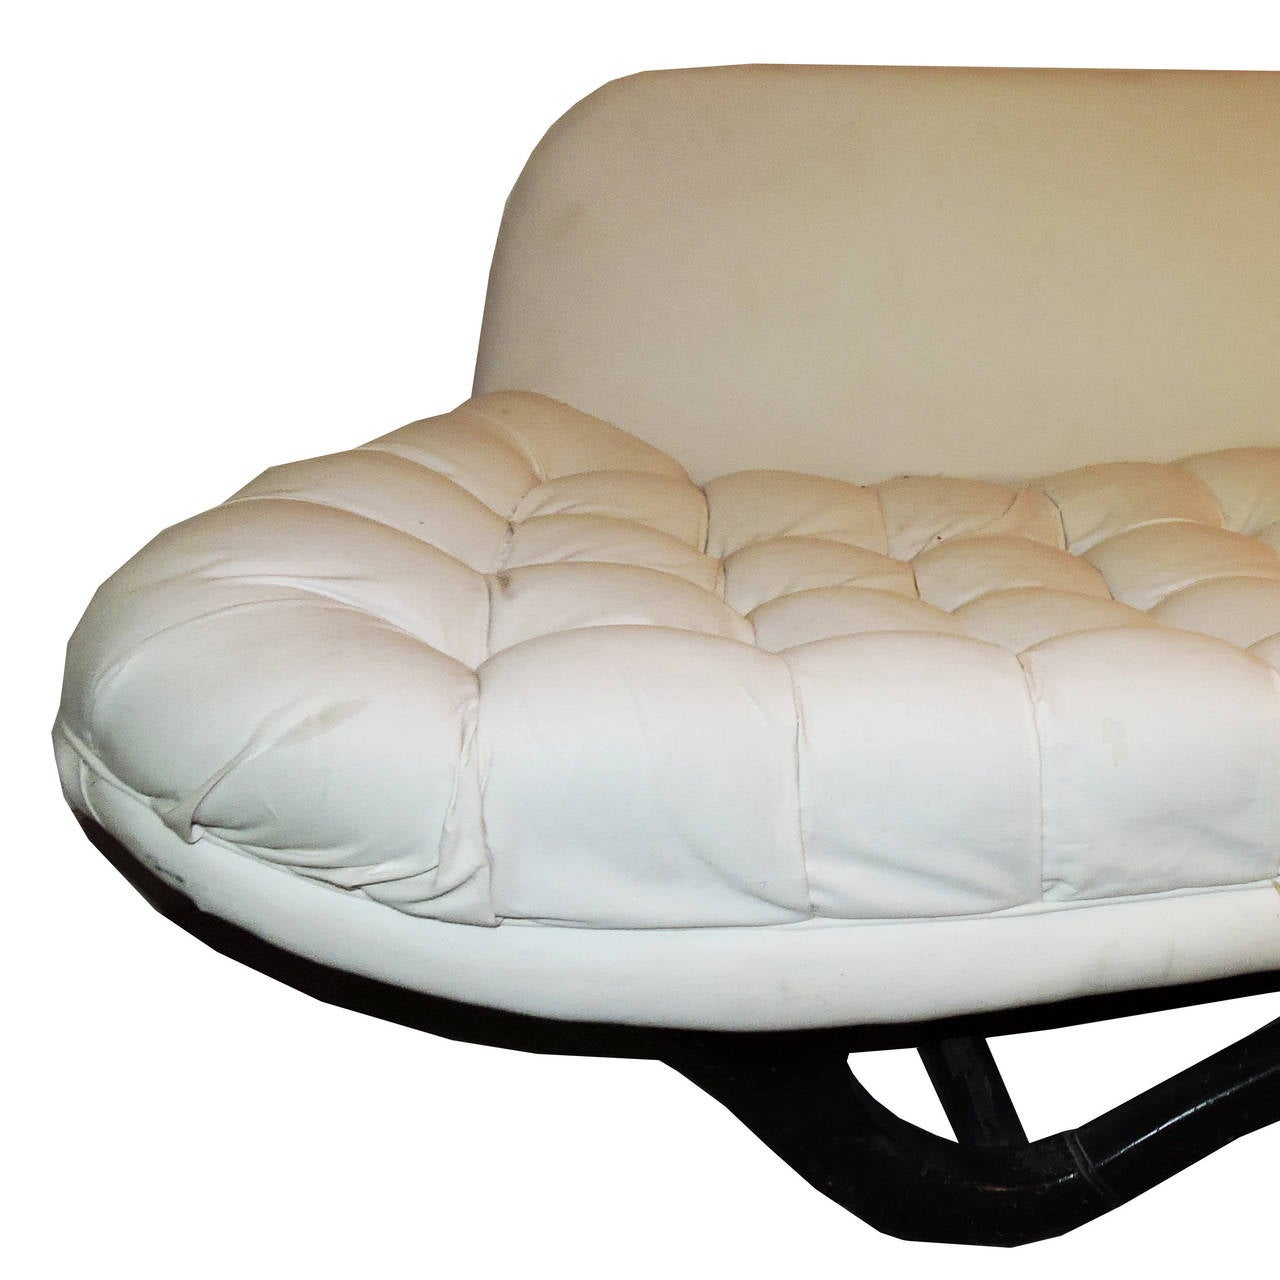 Mid century modern white tufted sofa for sale at 1stdibs for Tufted couches for sale